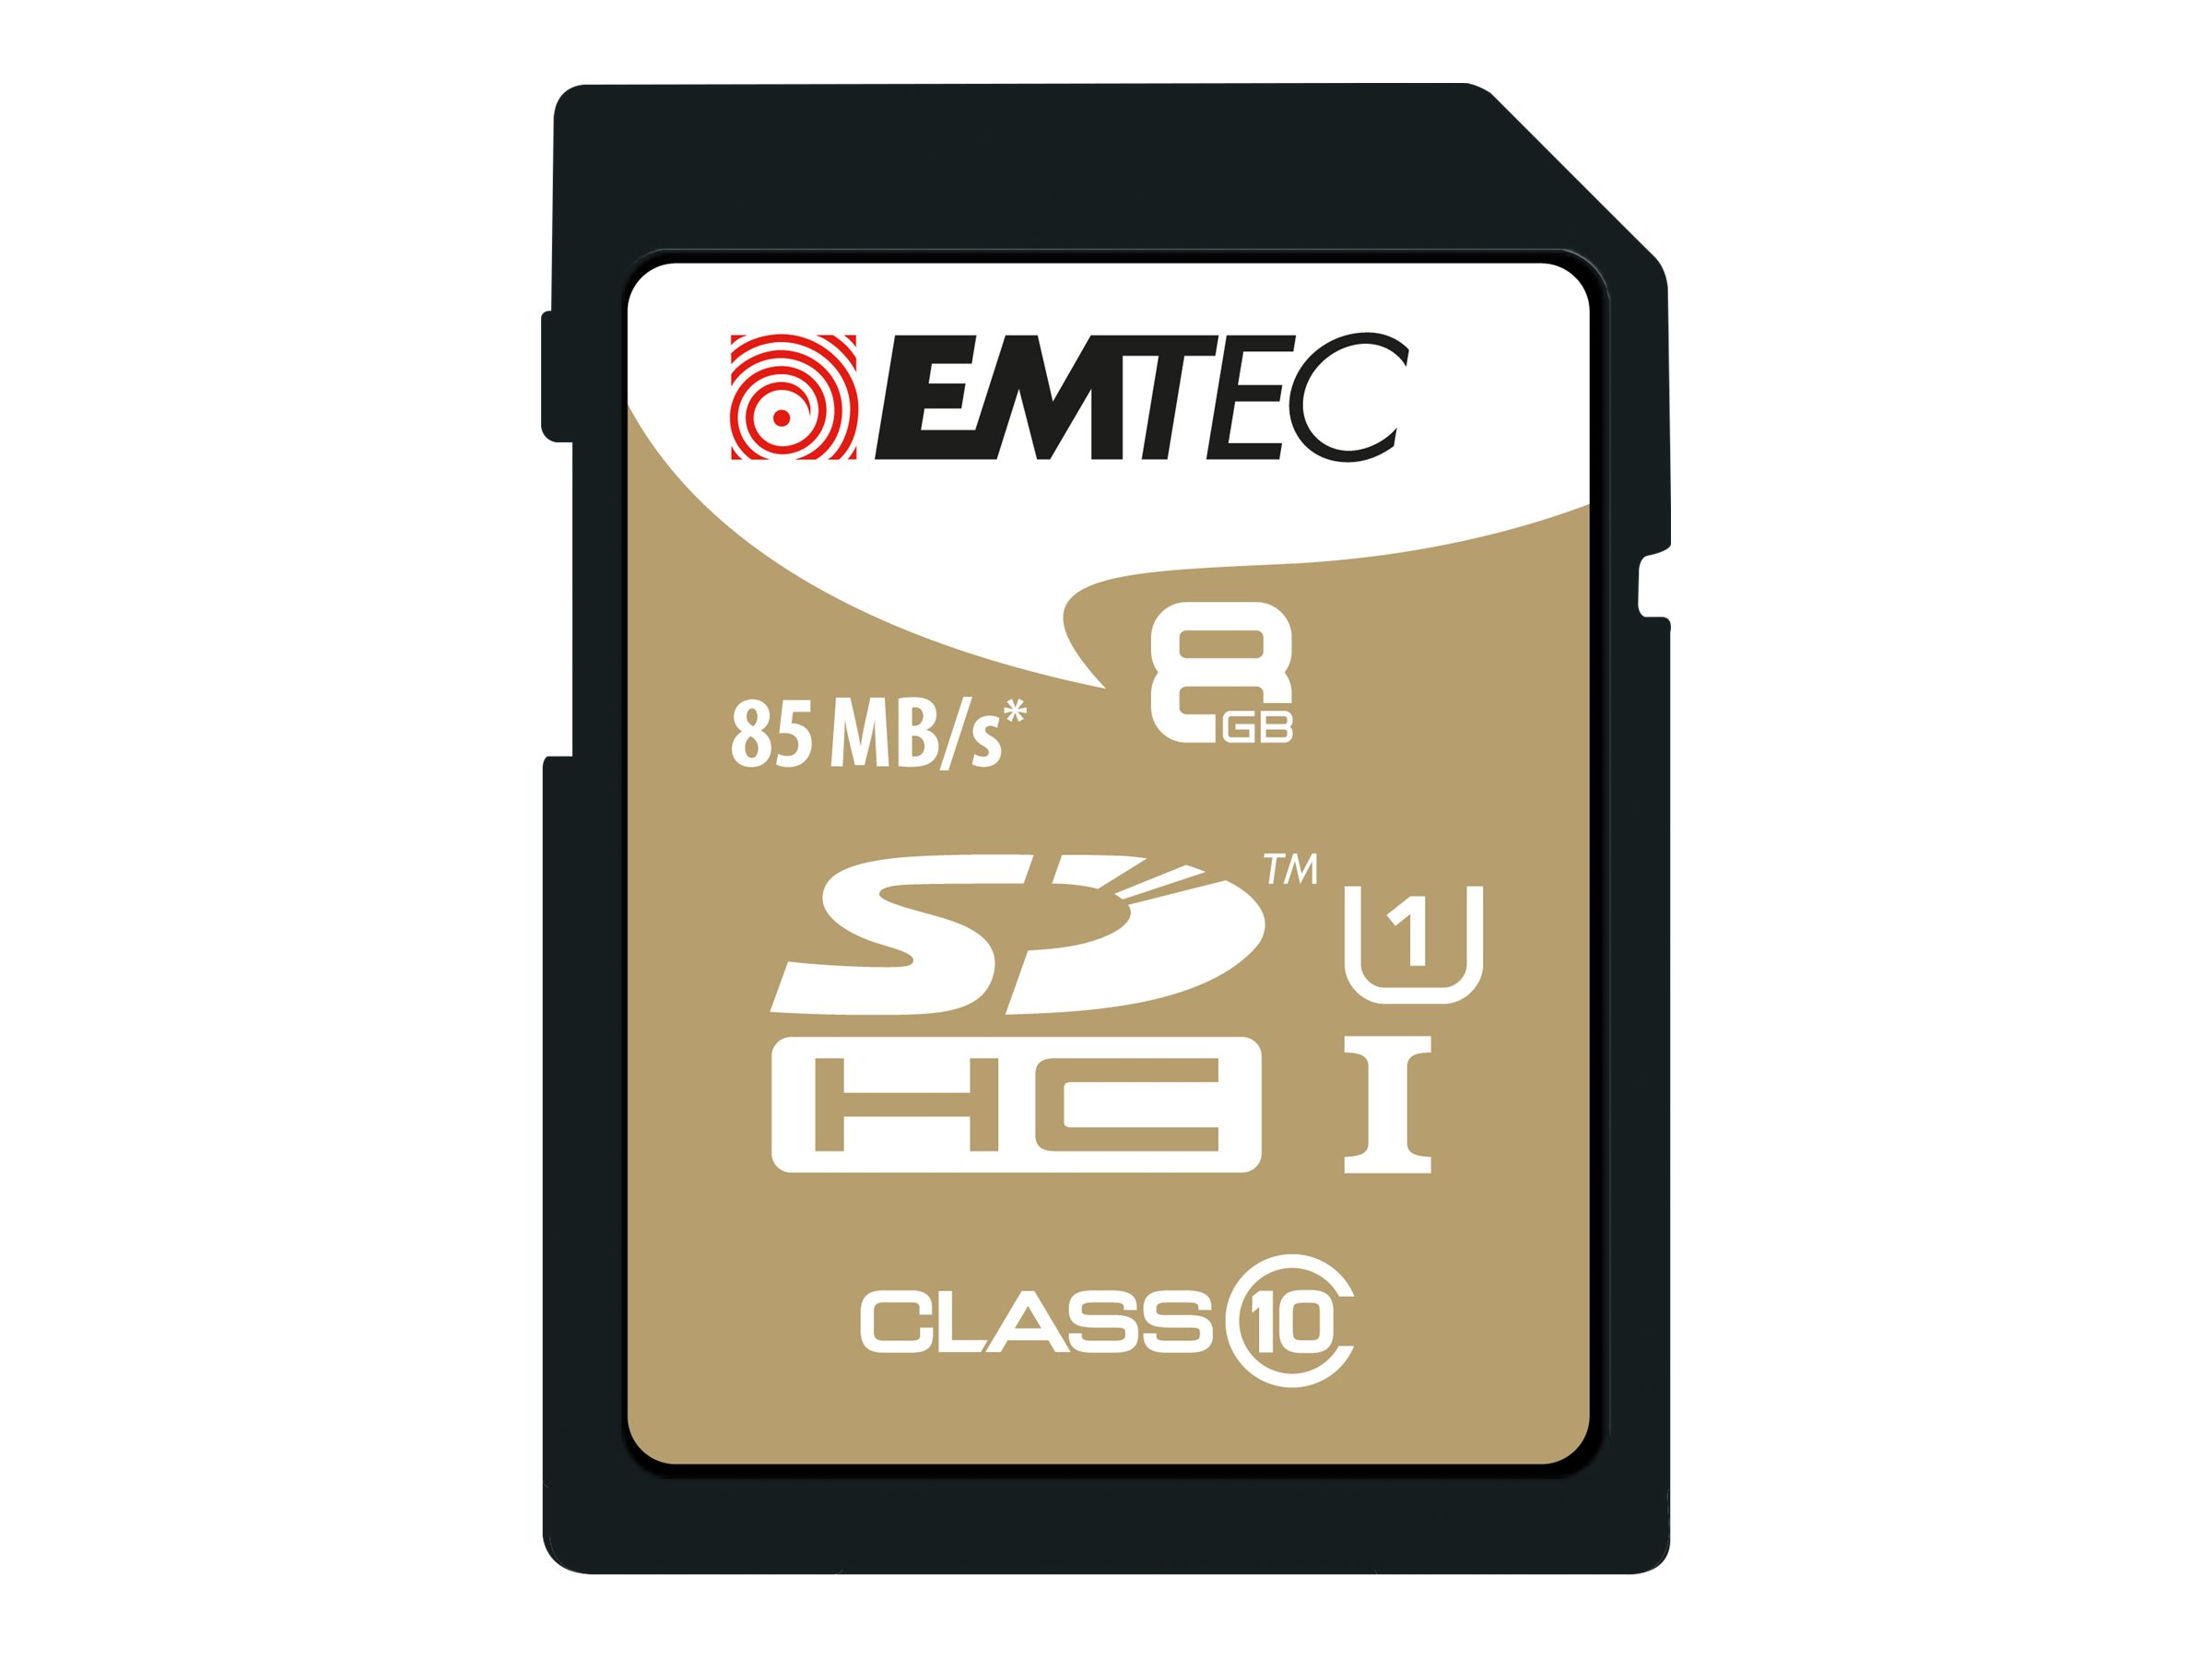 EMTEC Gold+ - Flash-Speicherkarte - 8 GB - Class 10 - SDHC - Gold